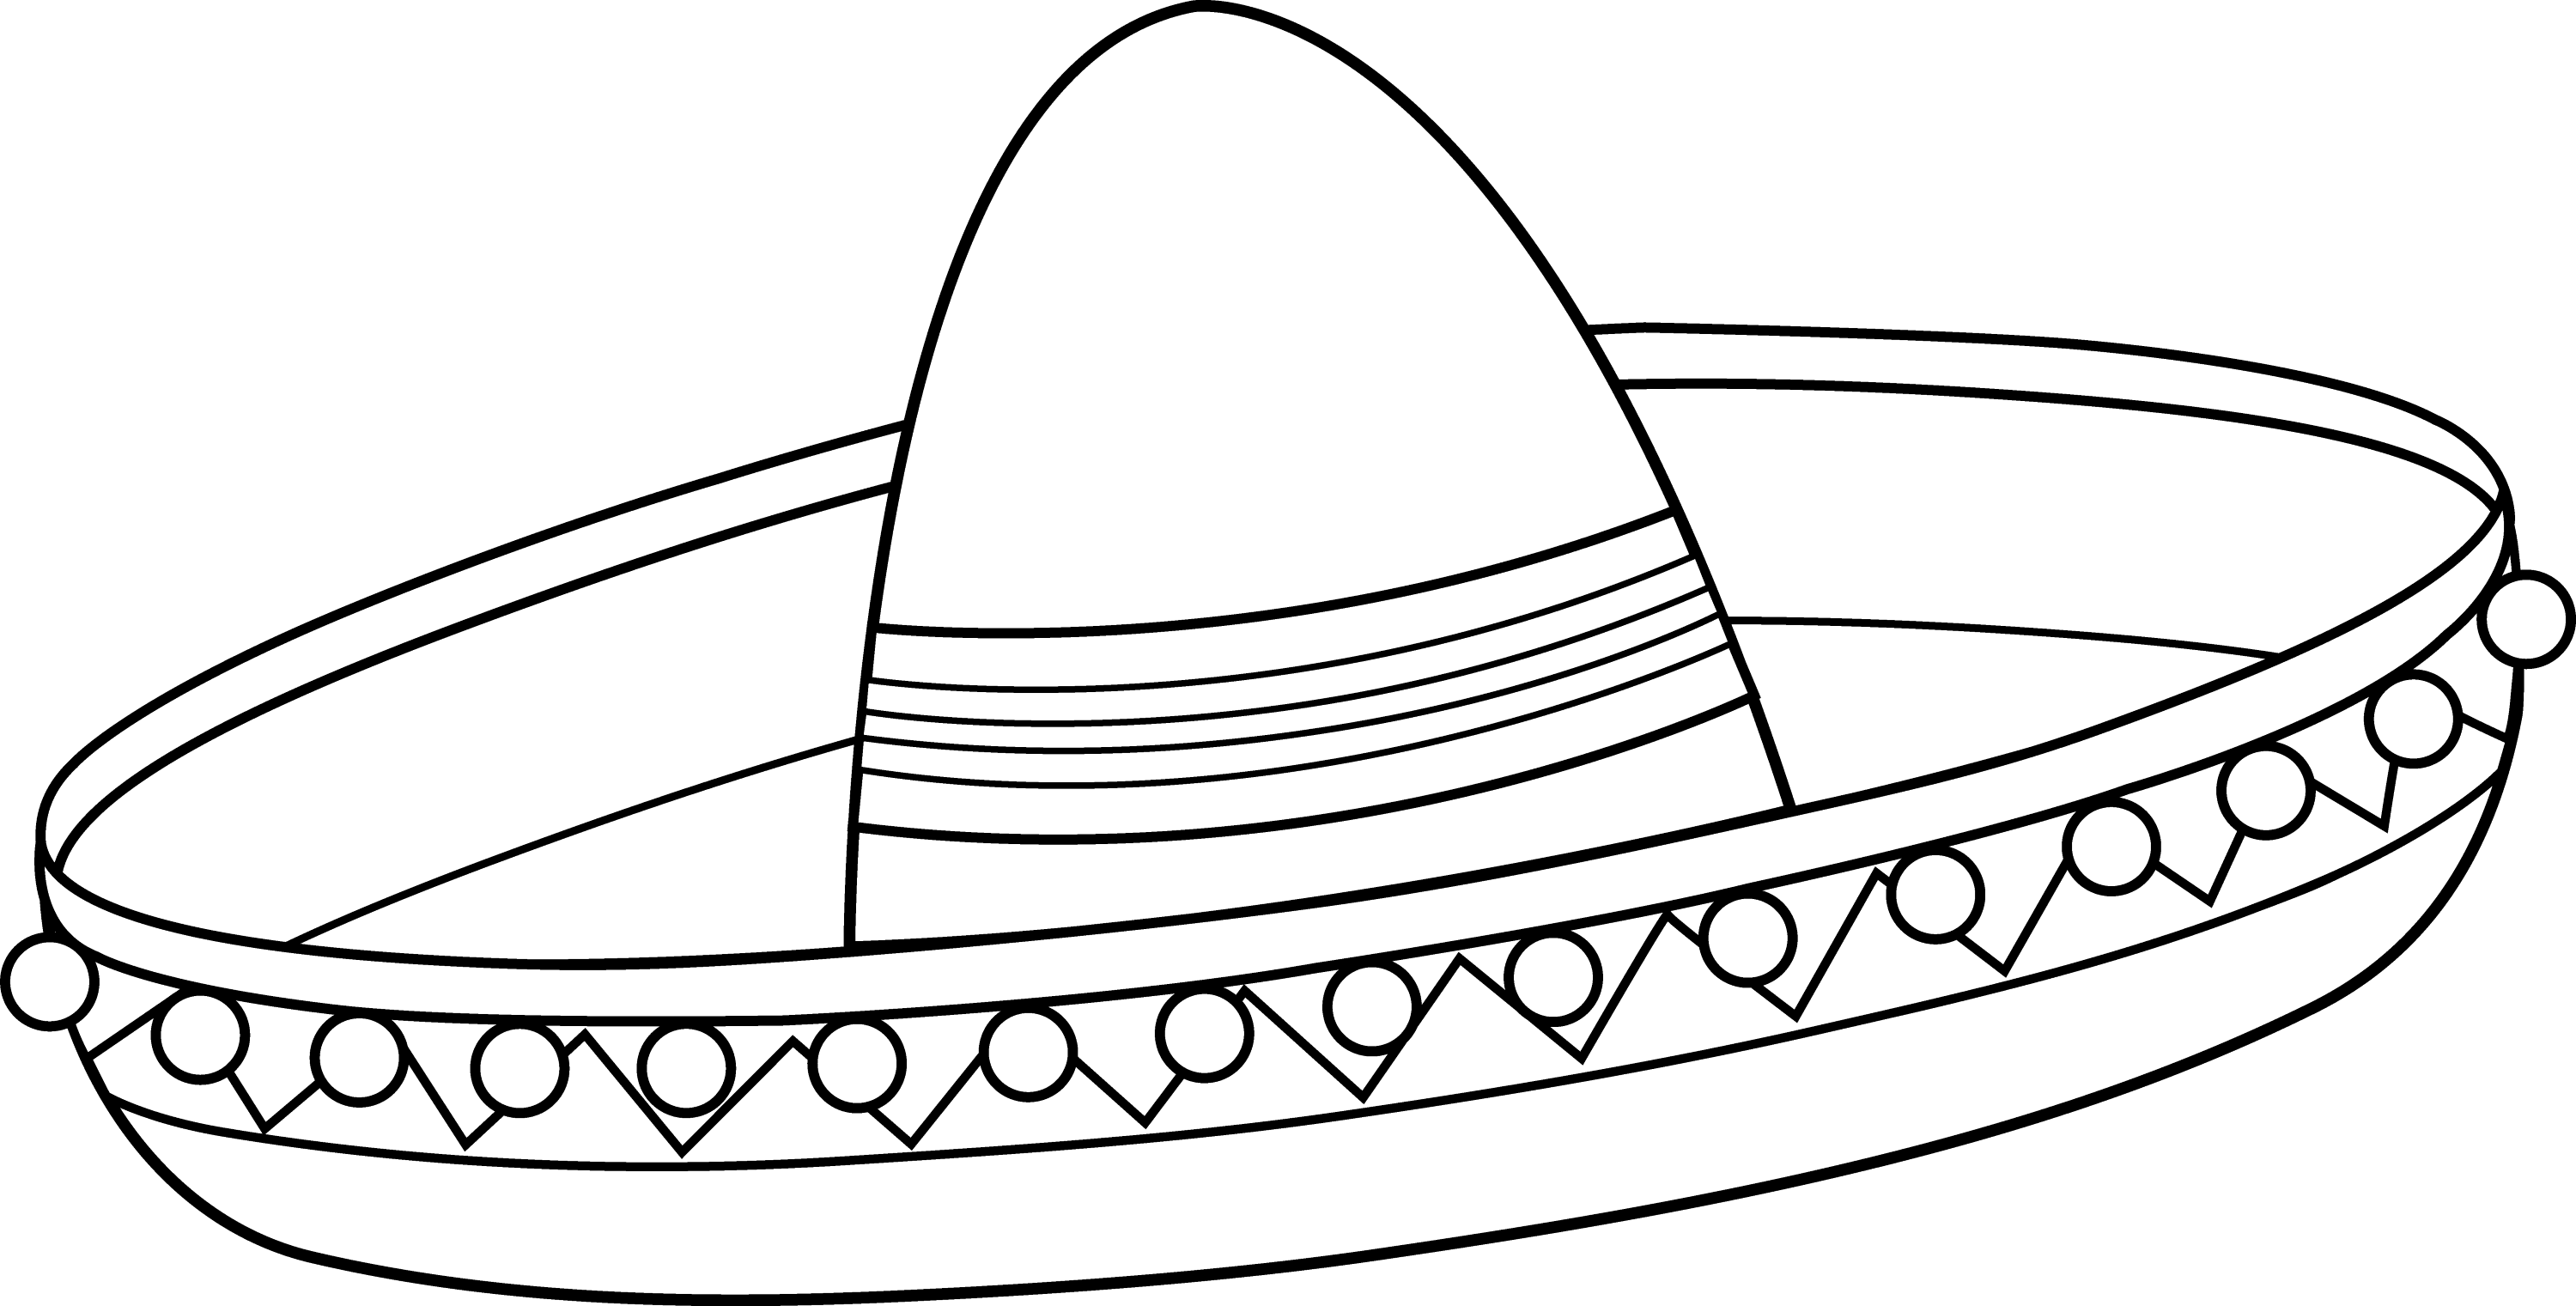 free sombrero coloring pages - photo#1